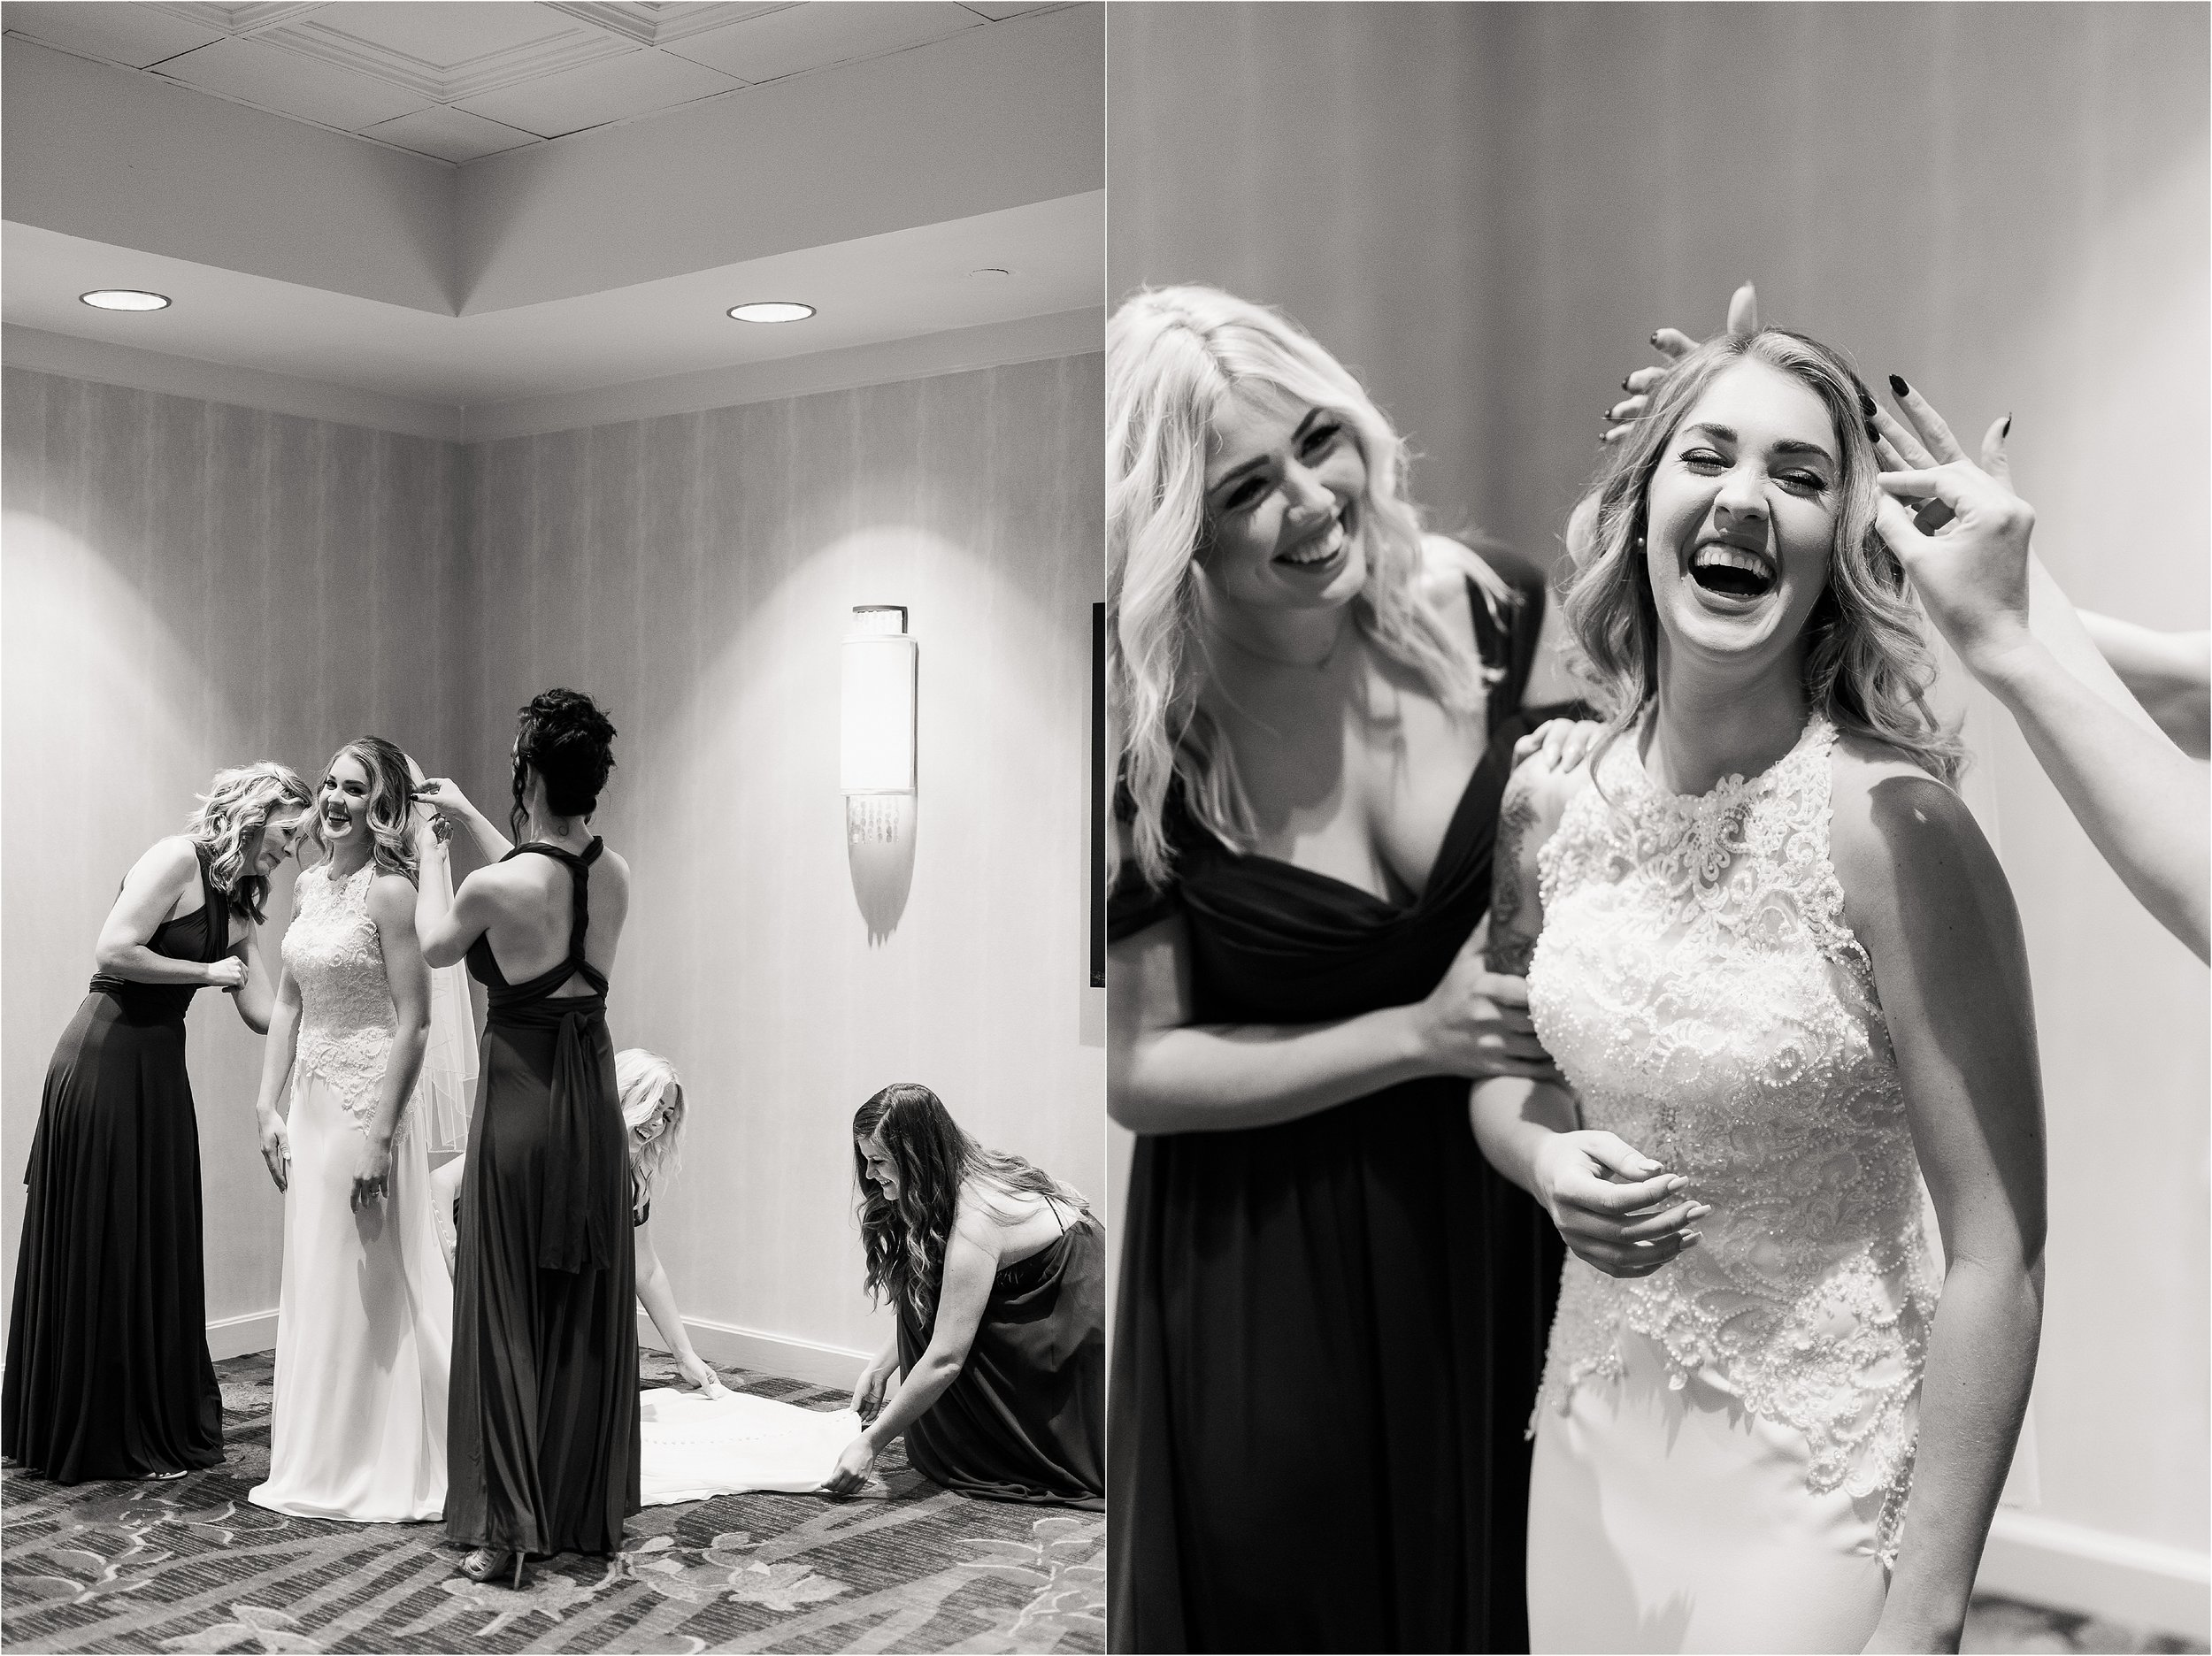 oklahoma wedding photographer hair makeup robes matching outfits bridal party getting ready bridesmaids maid of honor dressing buttons lace mother of bride black white black&white